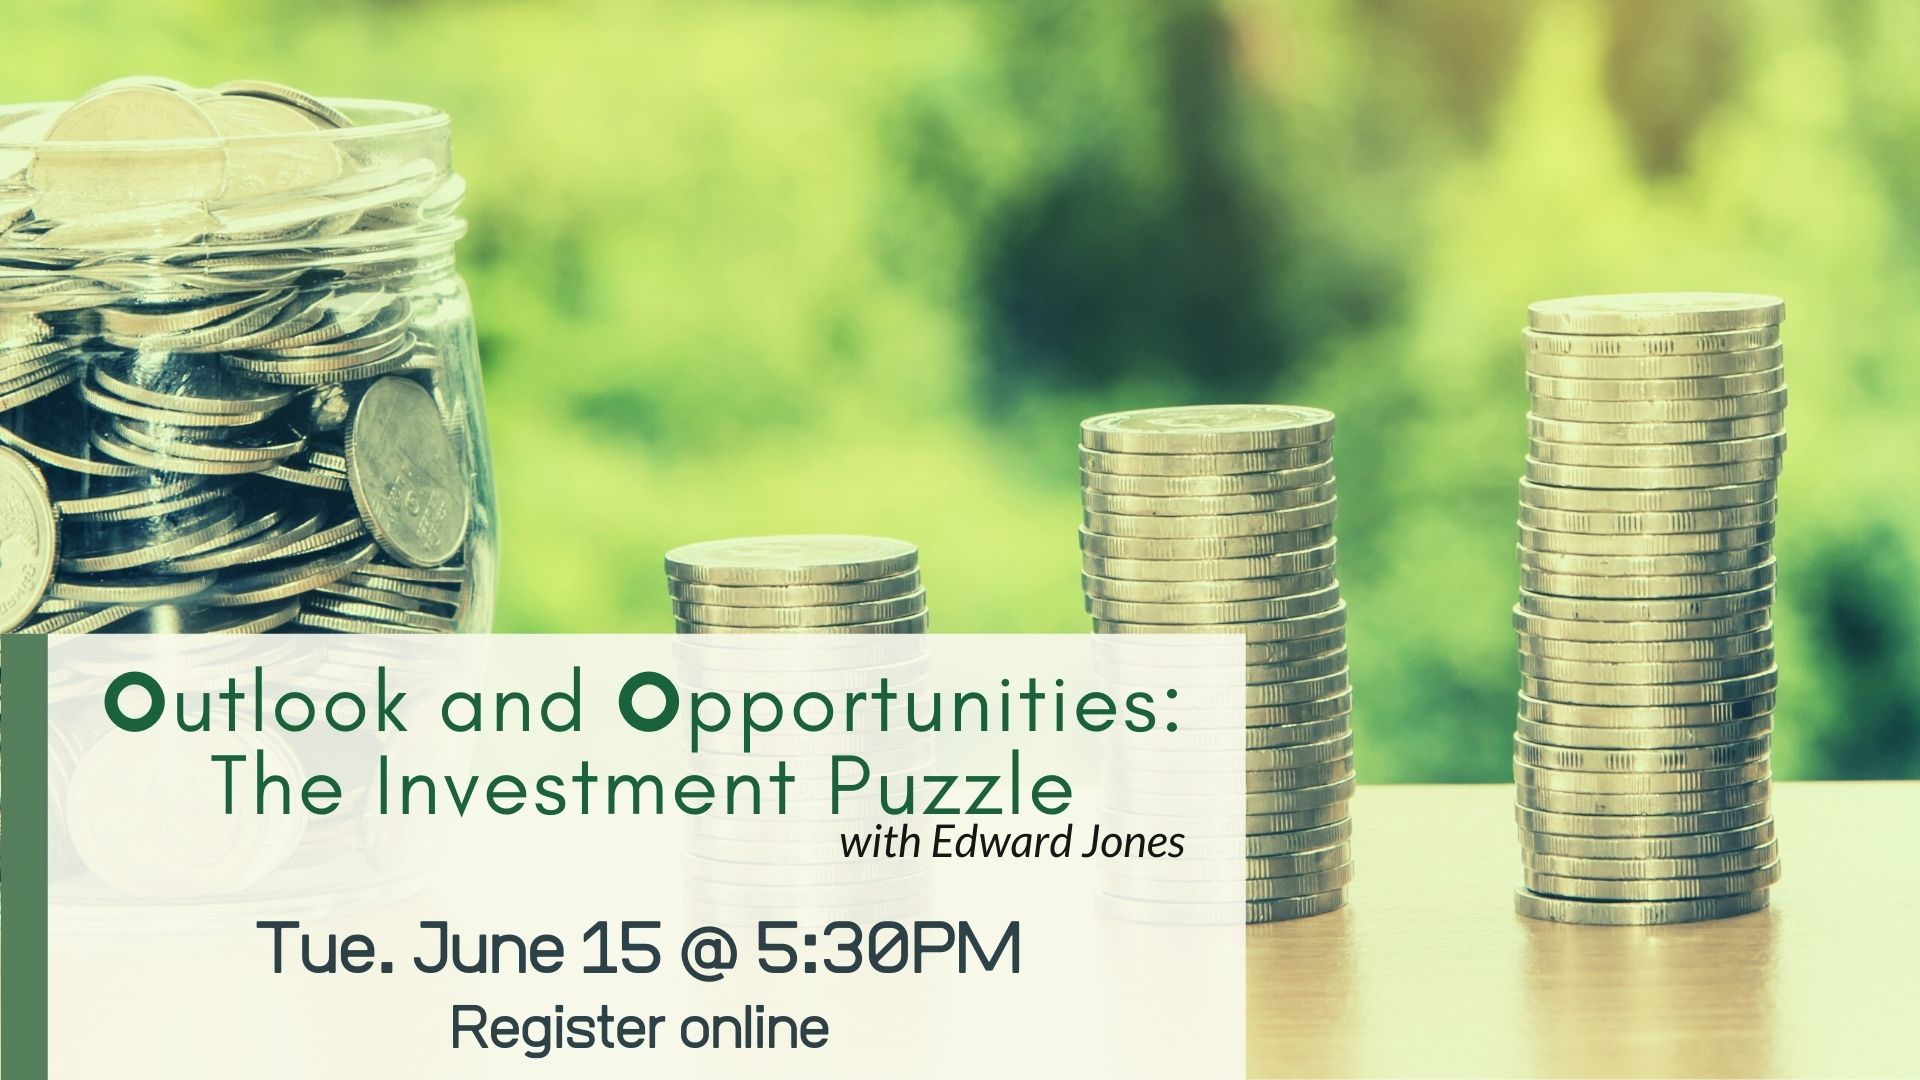 Outlook and Opportunities: The Investment Puzzle